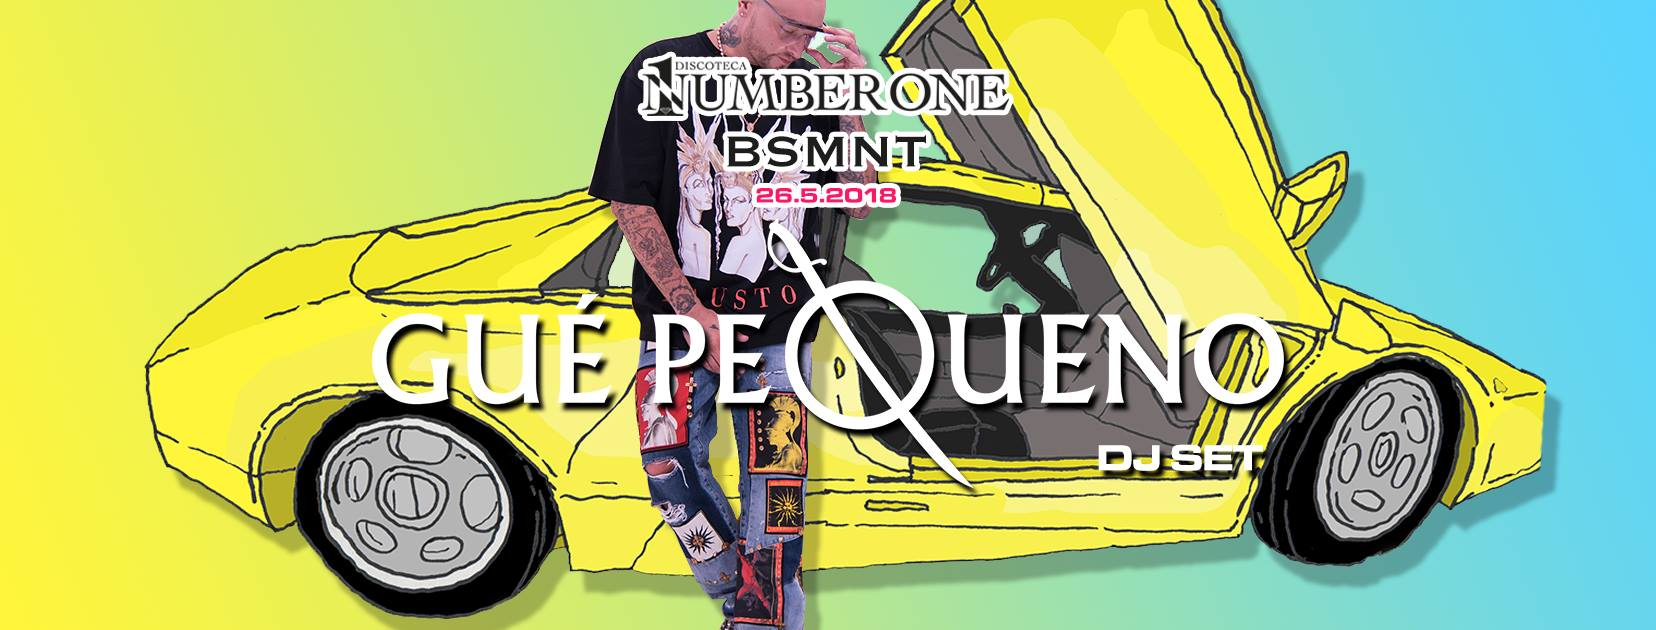 Basement & Number One – Gué Pequeno